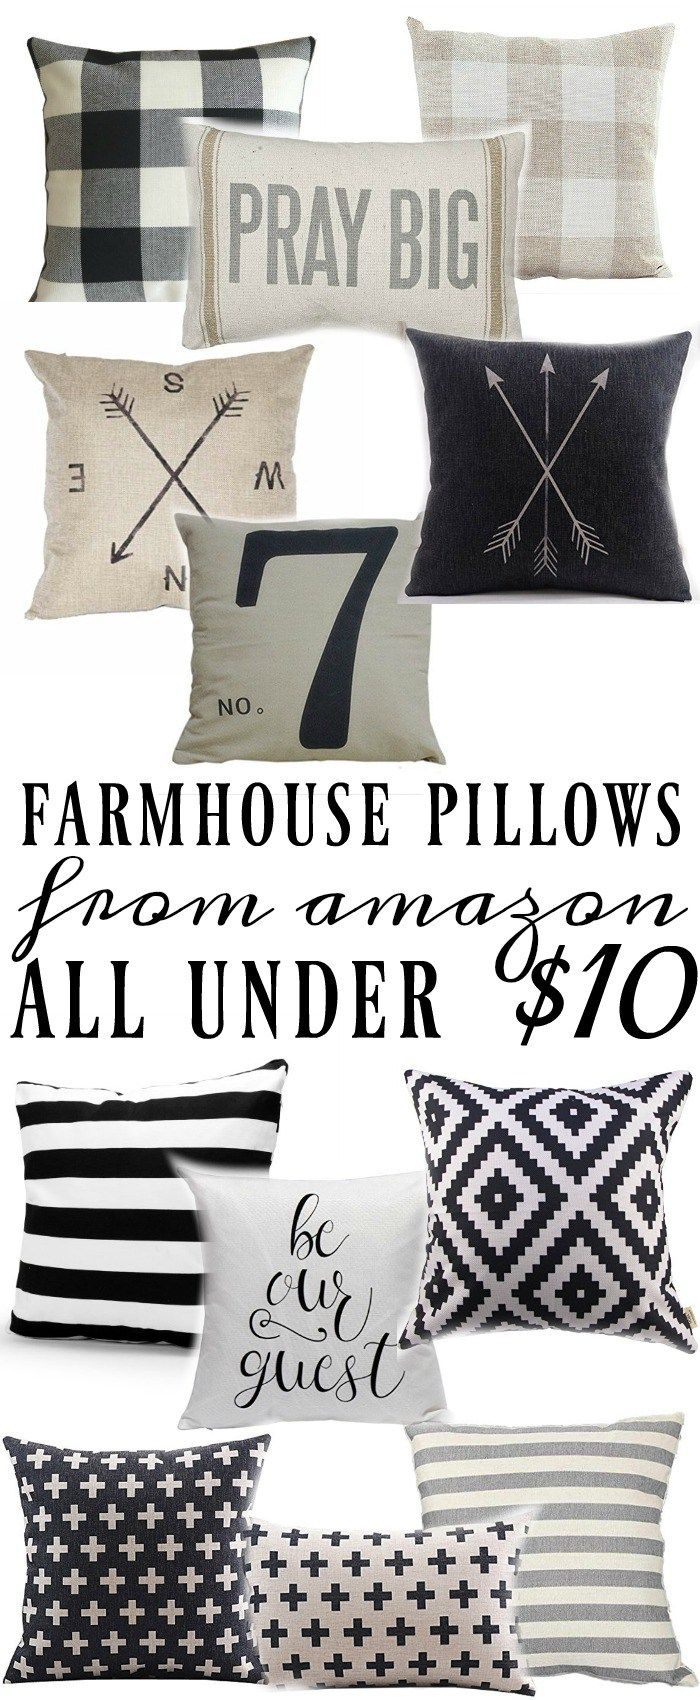 affiliate links to all the pillows: gray striped pillow [HERE] compass pillow [HERE] No. 7 Pillow [HERE] black & white checker pillow [HERE] neutral tartan pillow [HERE] pray big pillow [HERE] …